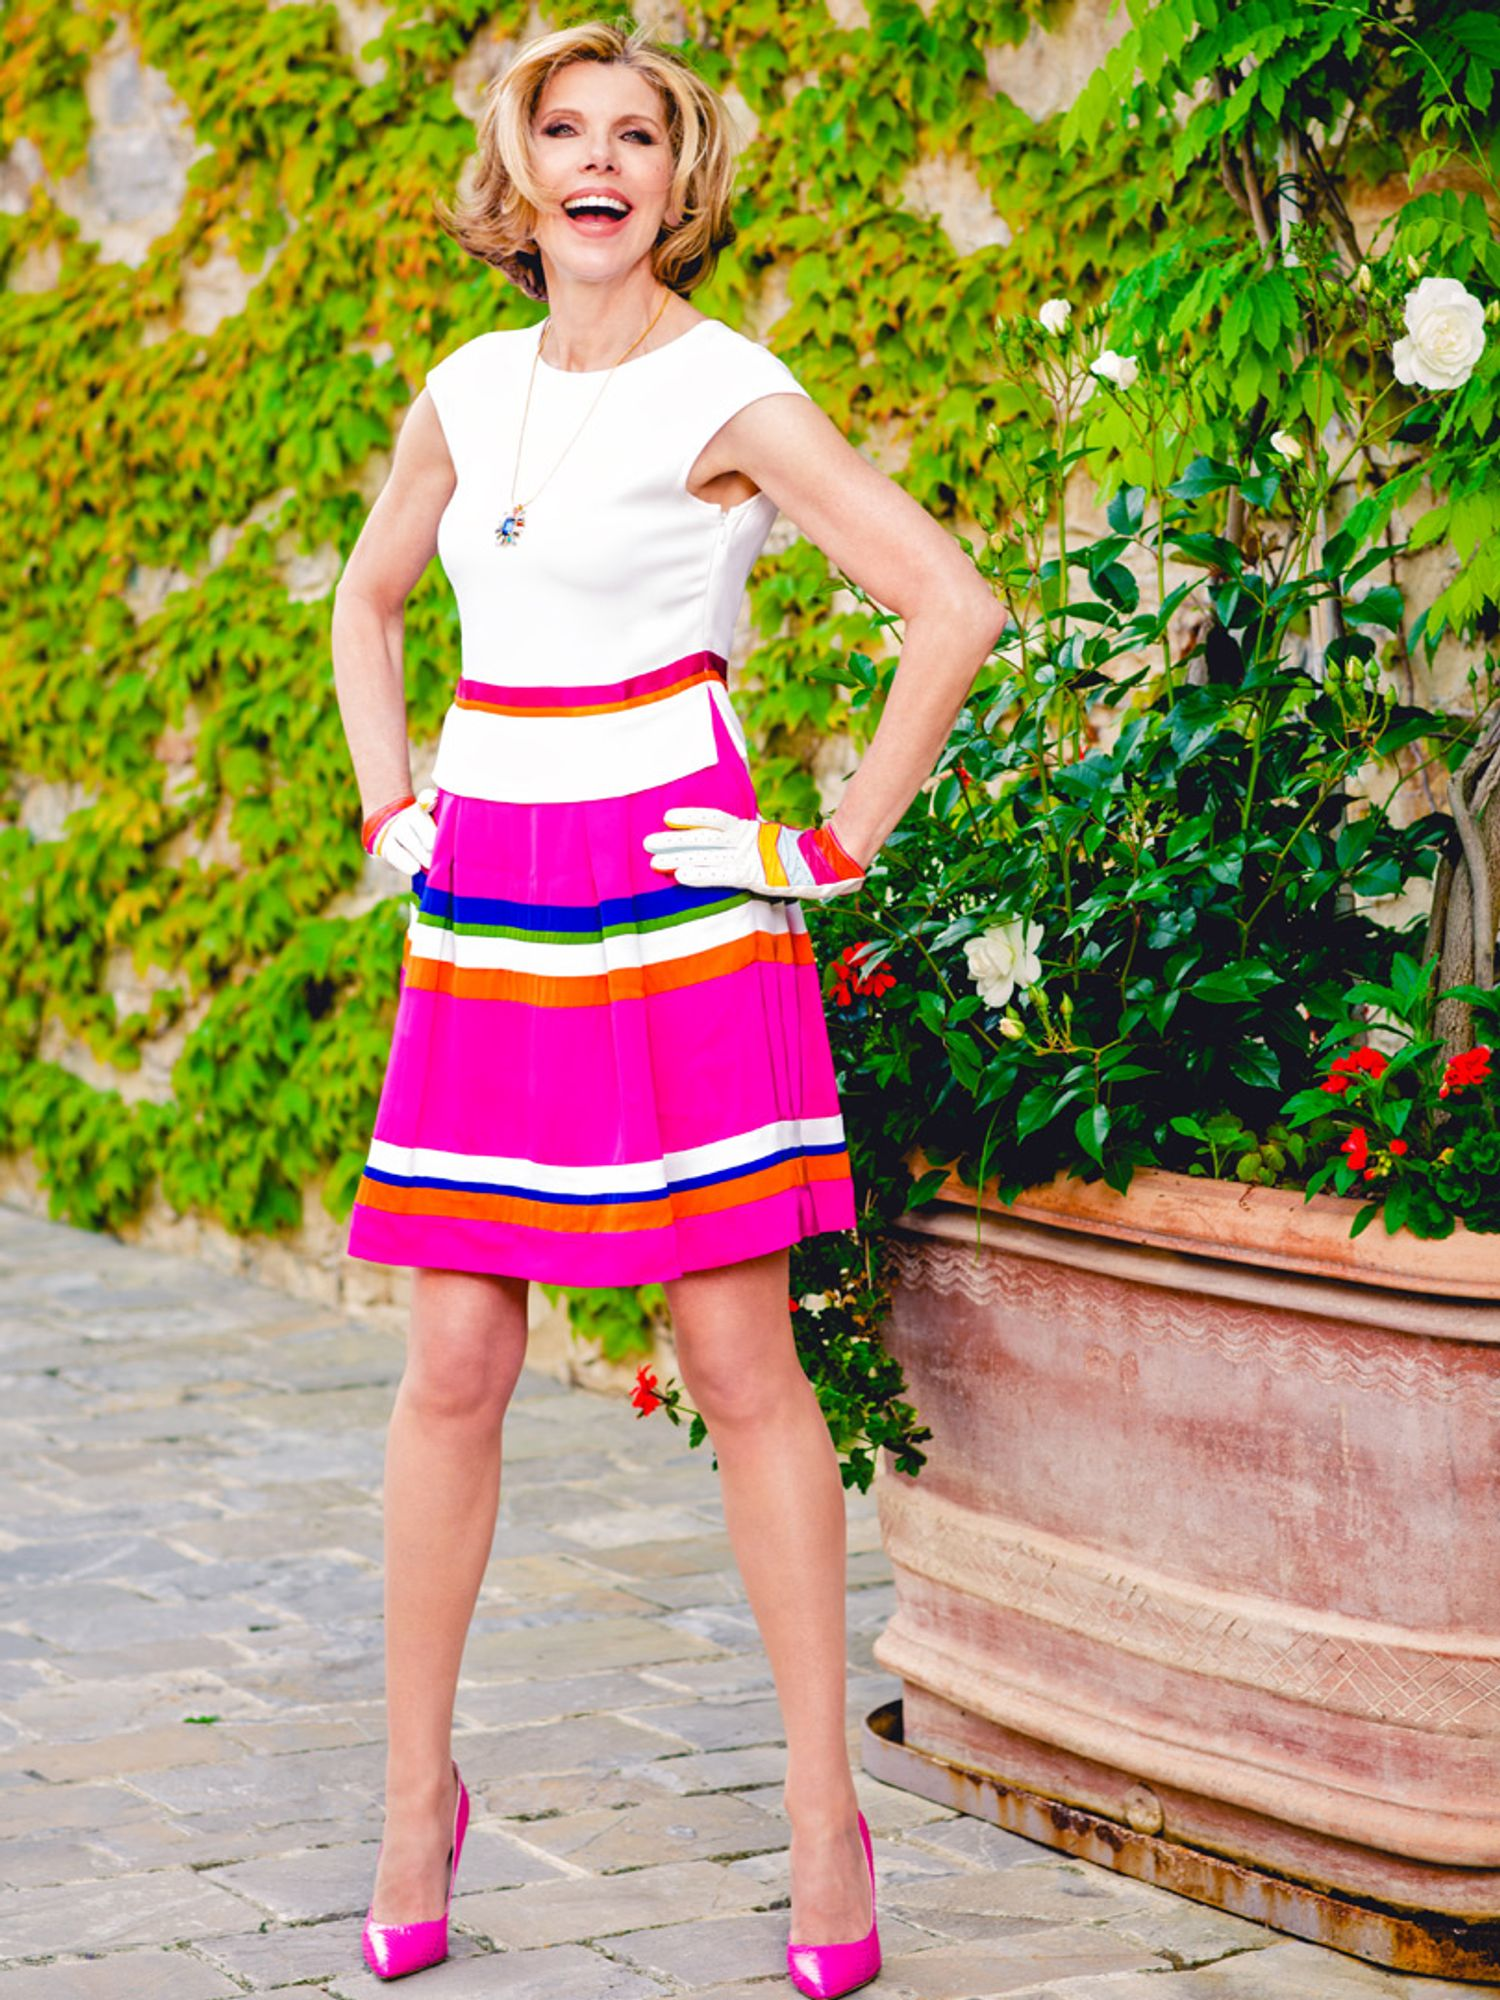 Christine Baranski of The Good Fight in a pink striped skirt and pink heels